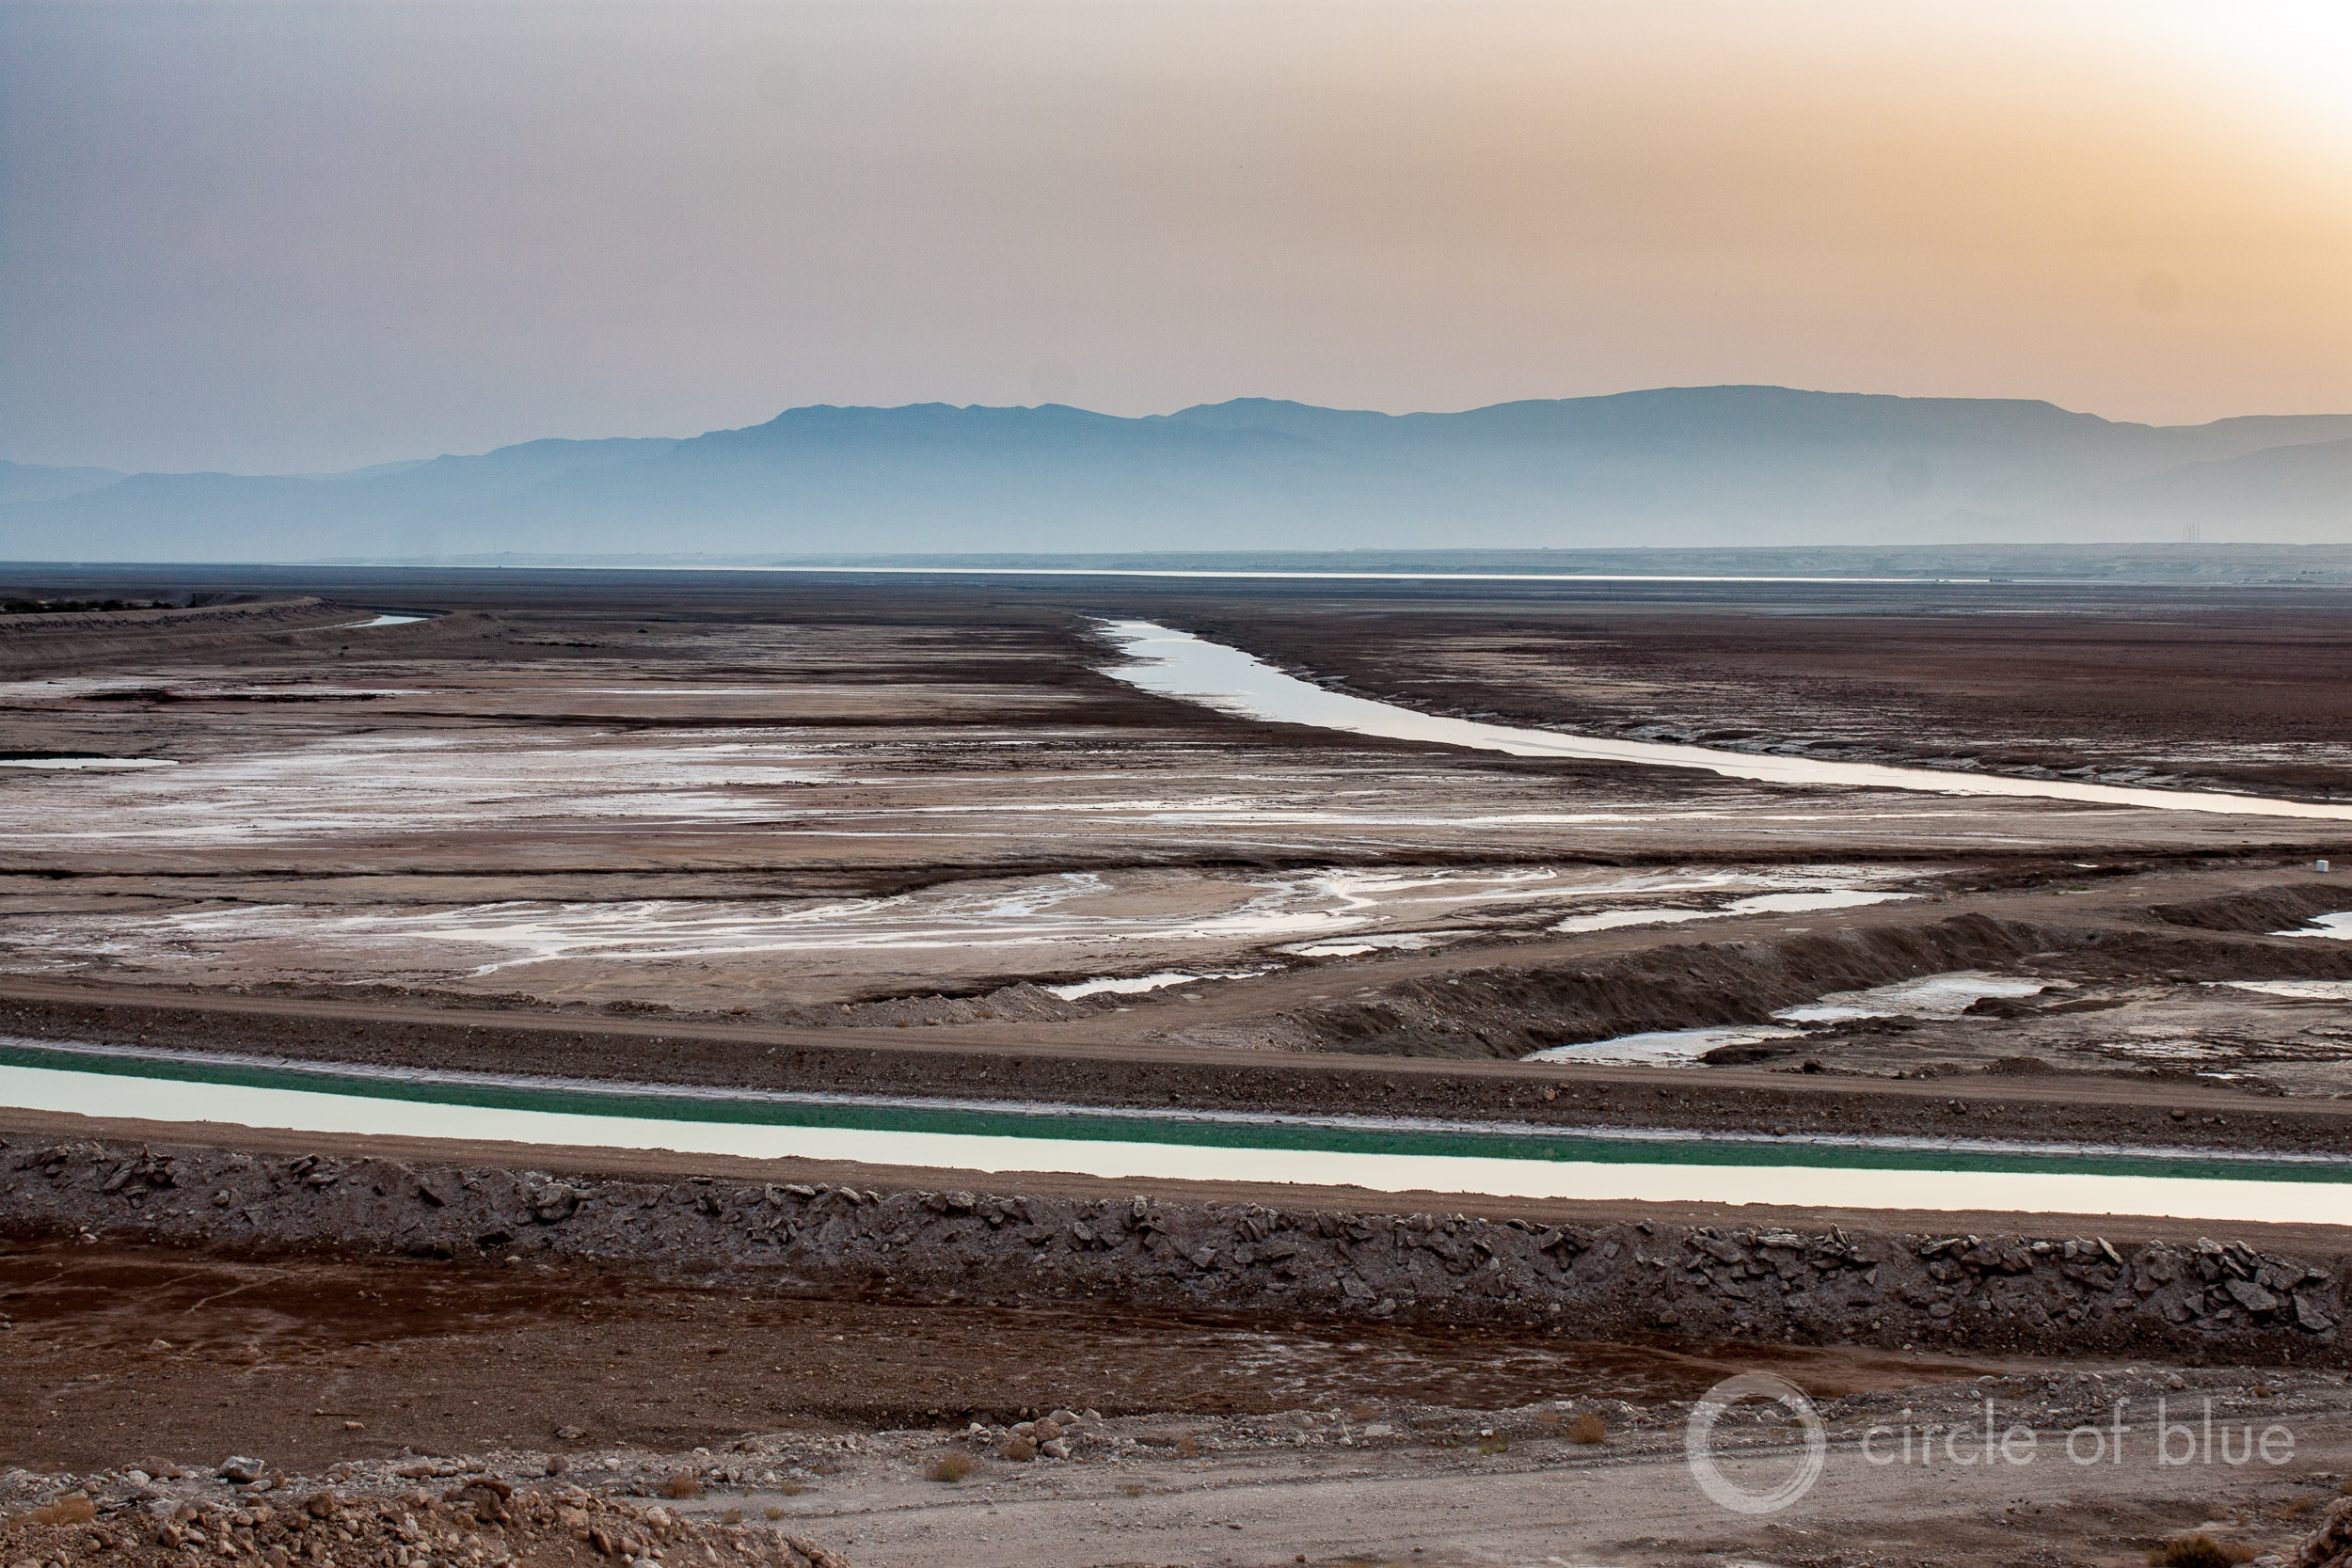 The Dead Sea, shrinking because of upstream water withdrawals, has split into two basins. The canal in the foreground moves water from the northern basin to the south. Photo © Brett Walton / Circle of Blue